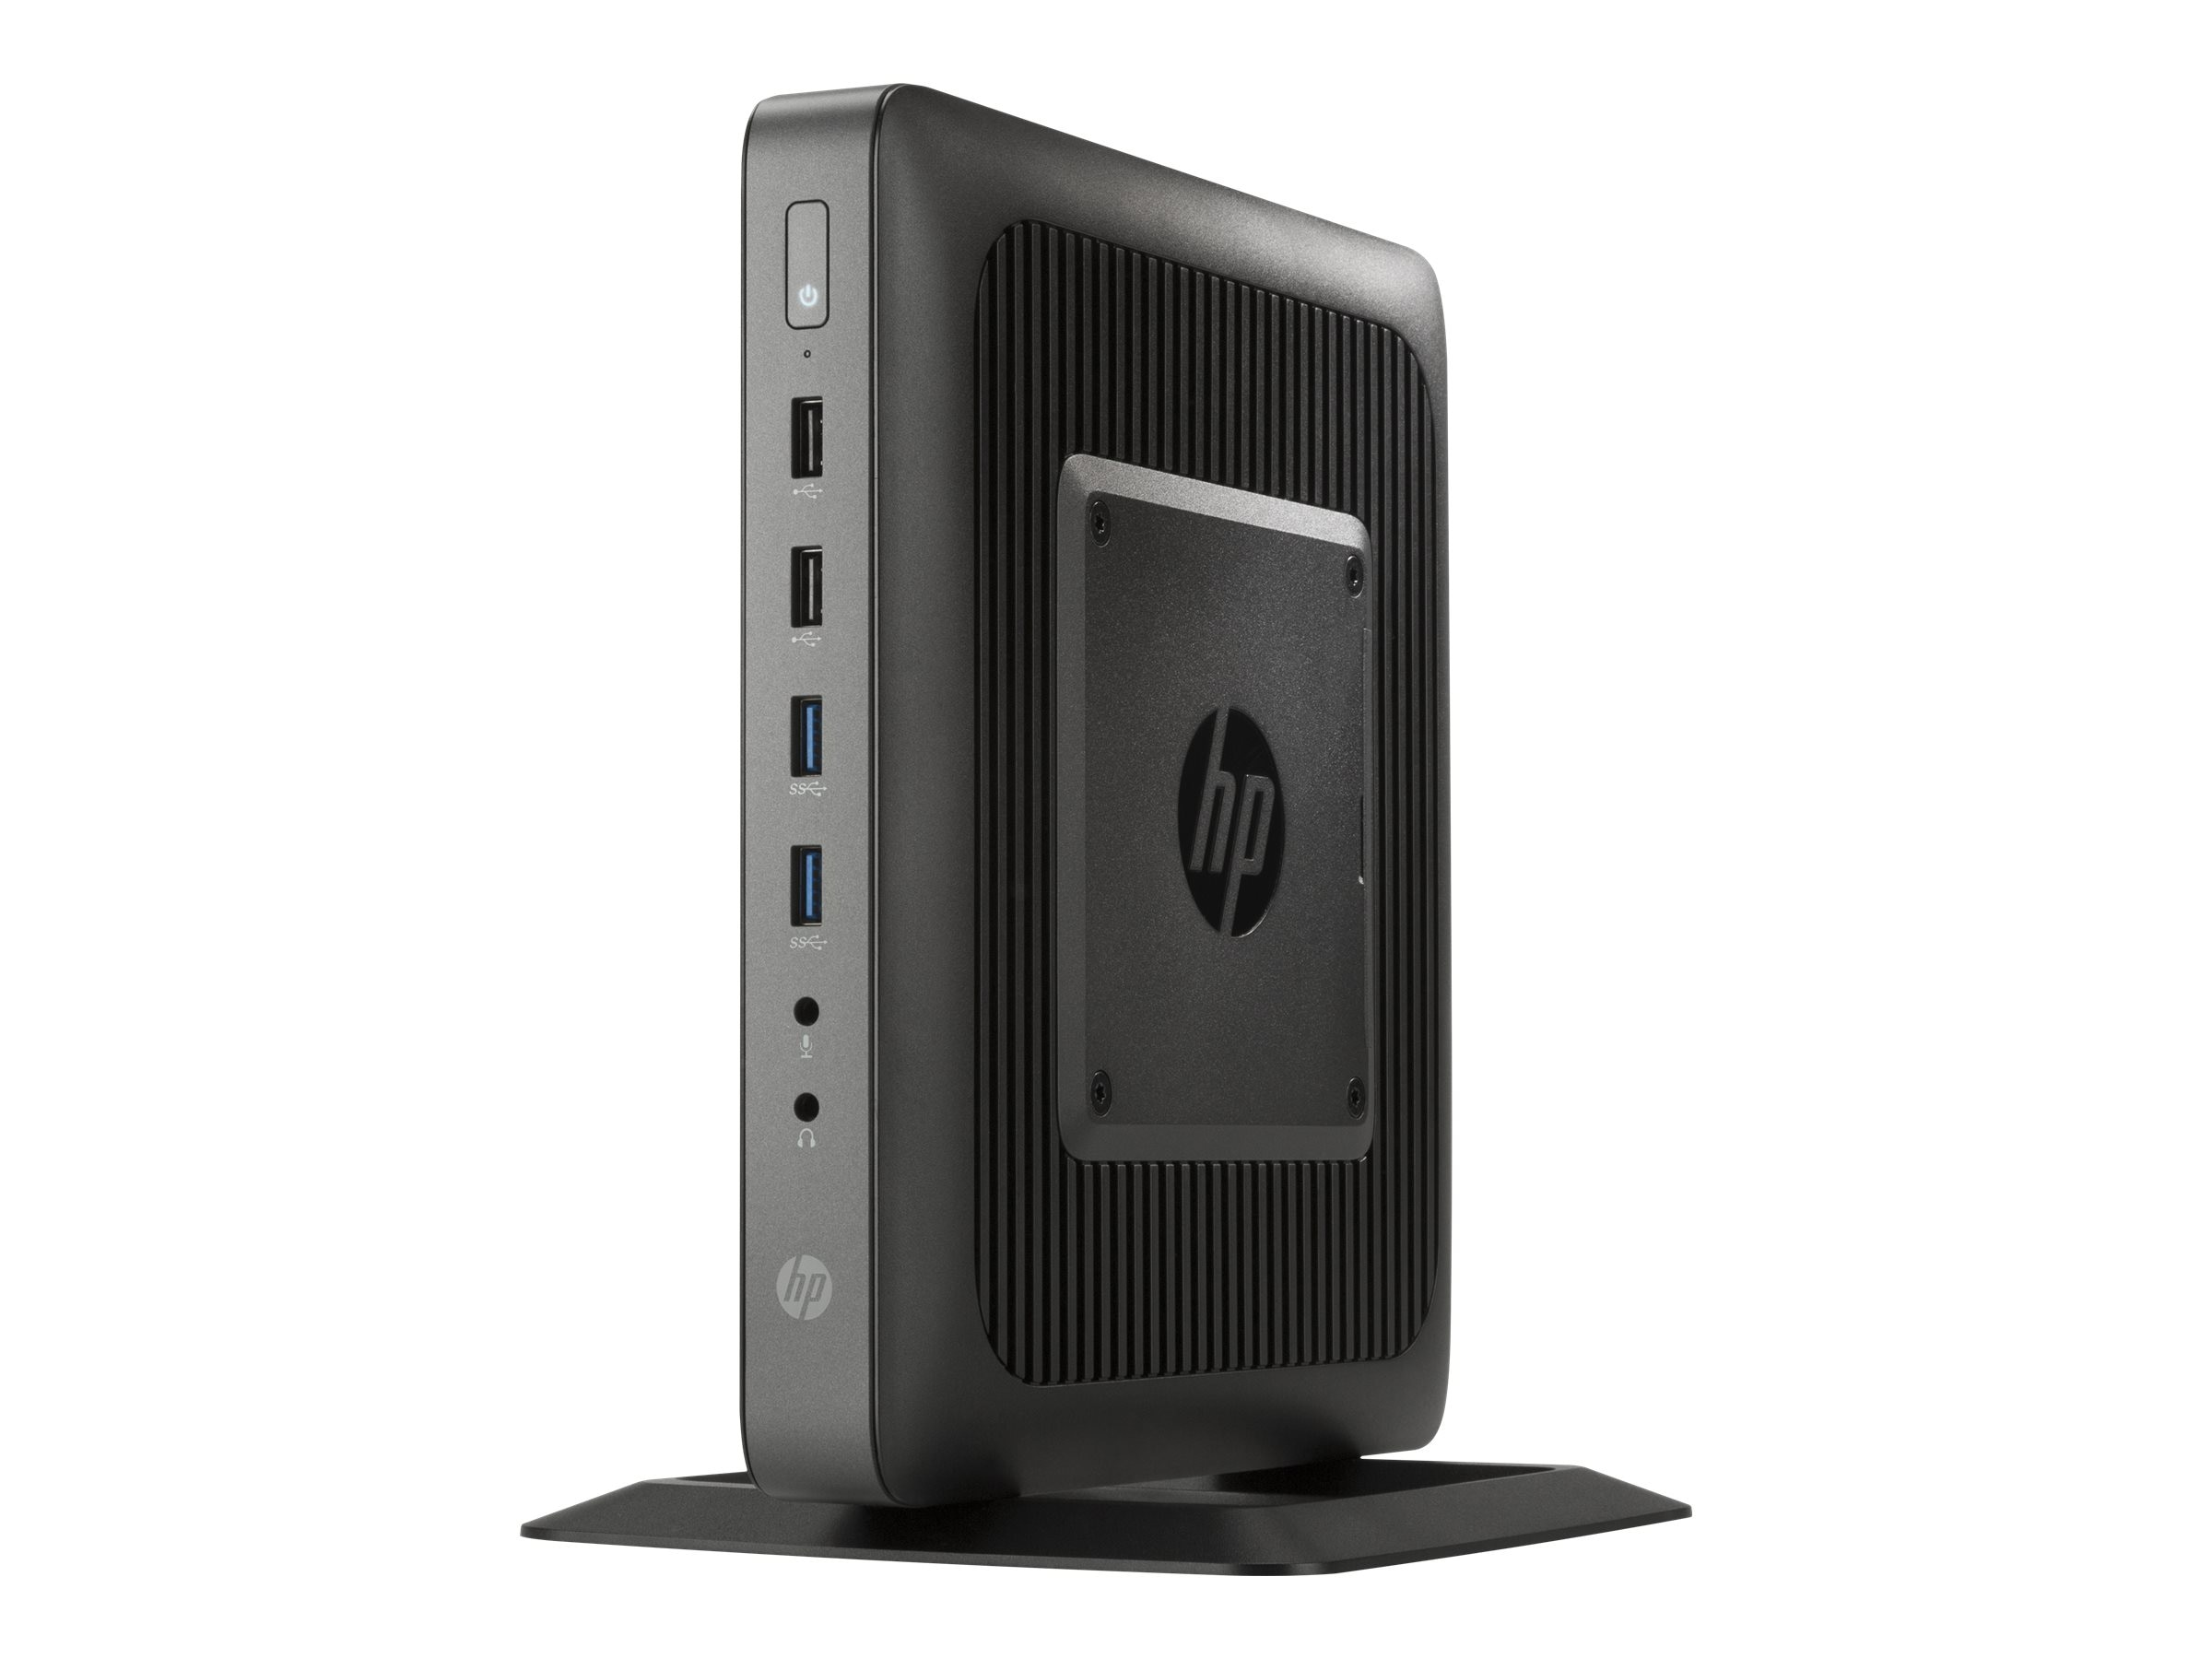 HP Smart Buy t620 Flexible Thin Client AMD QC GX-415GA 1.5GHz 4GB RAM 8GB Flash GbE ThinPro, G4U31UT#ABA, 17076992, Thin Client Hardware